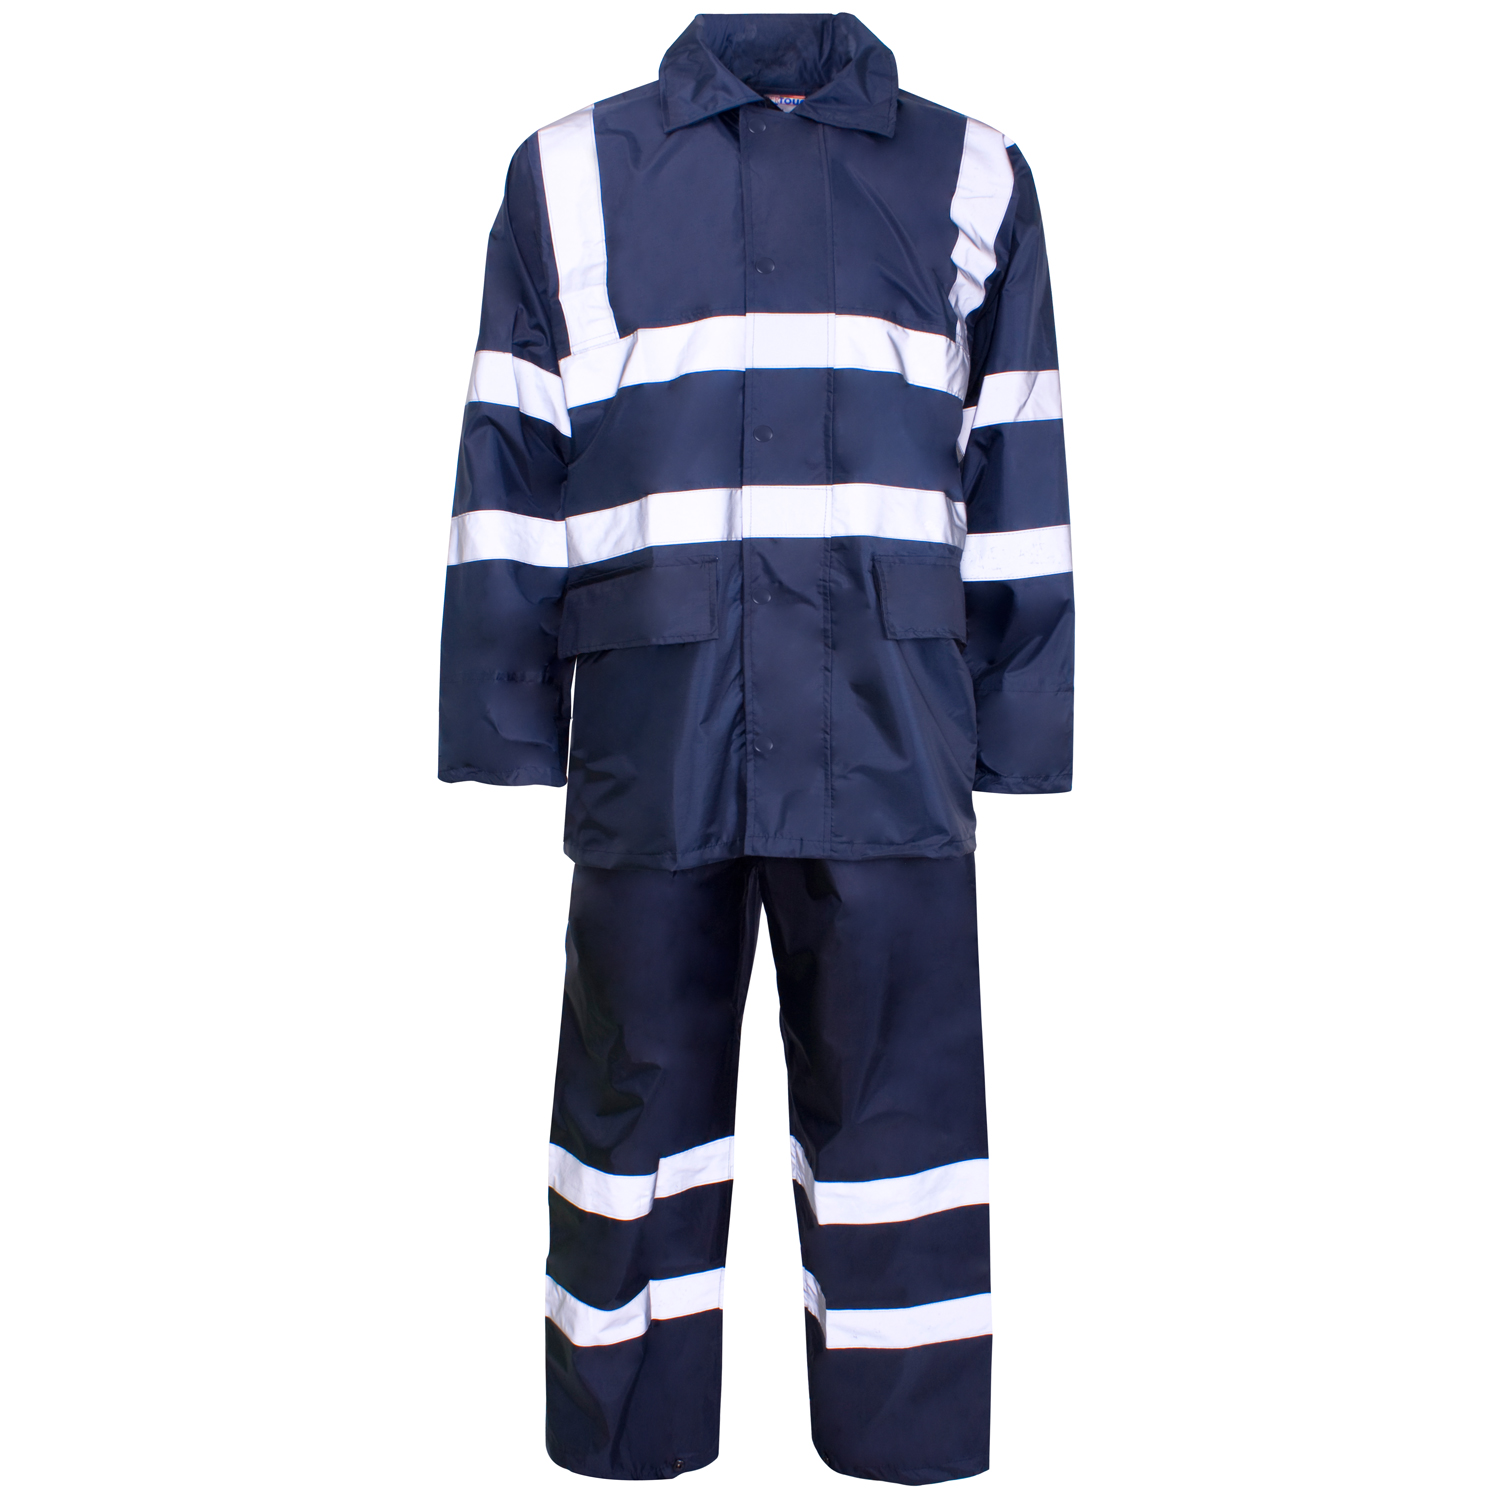 HR-005 Navy Blue 190T Polyester/PVC Rainwear